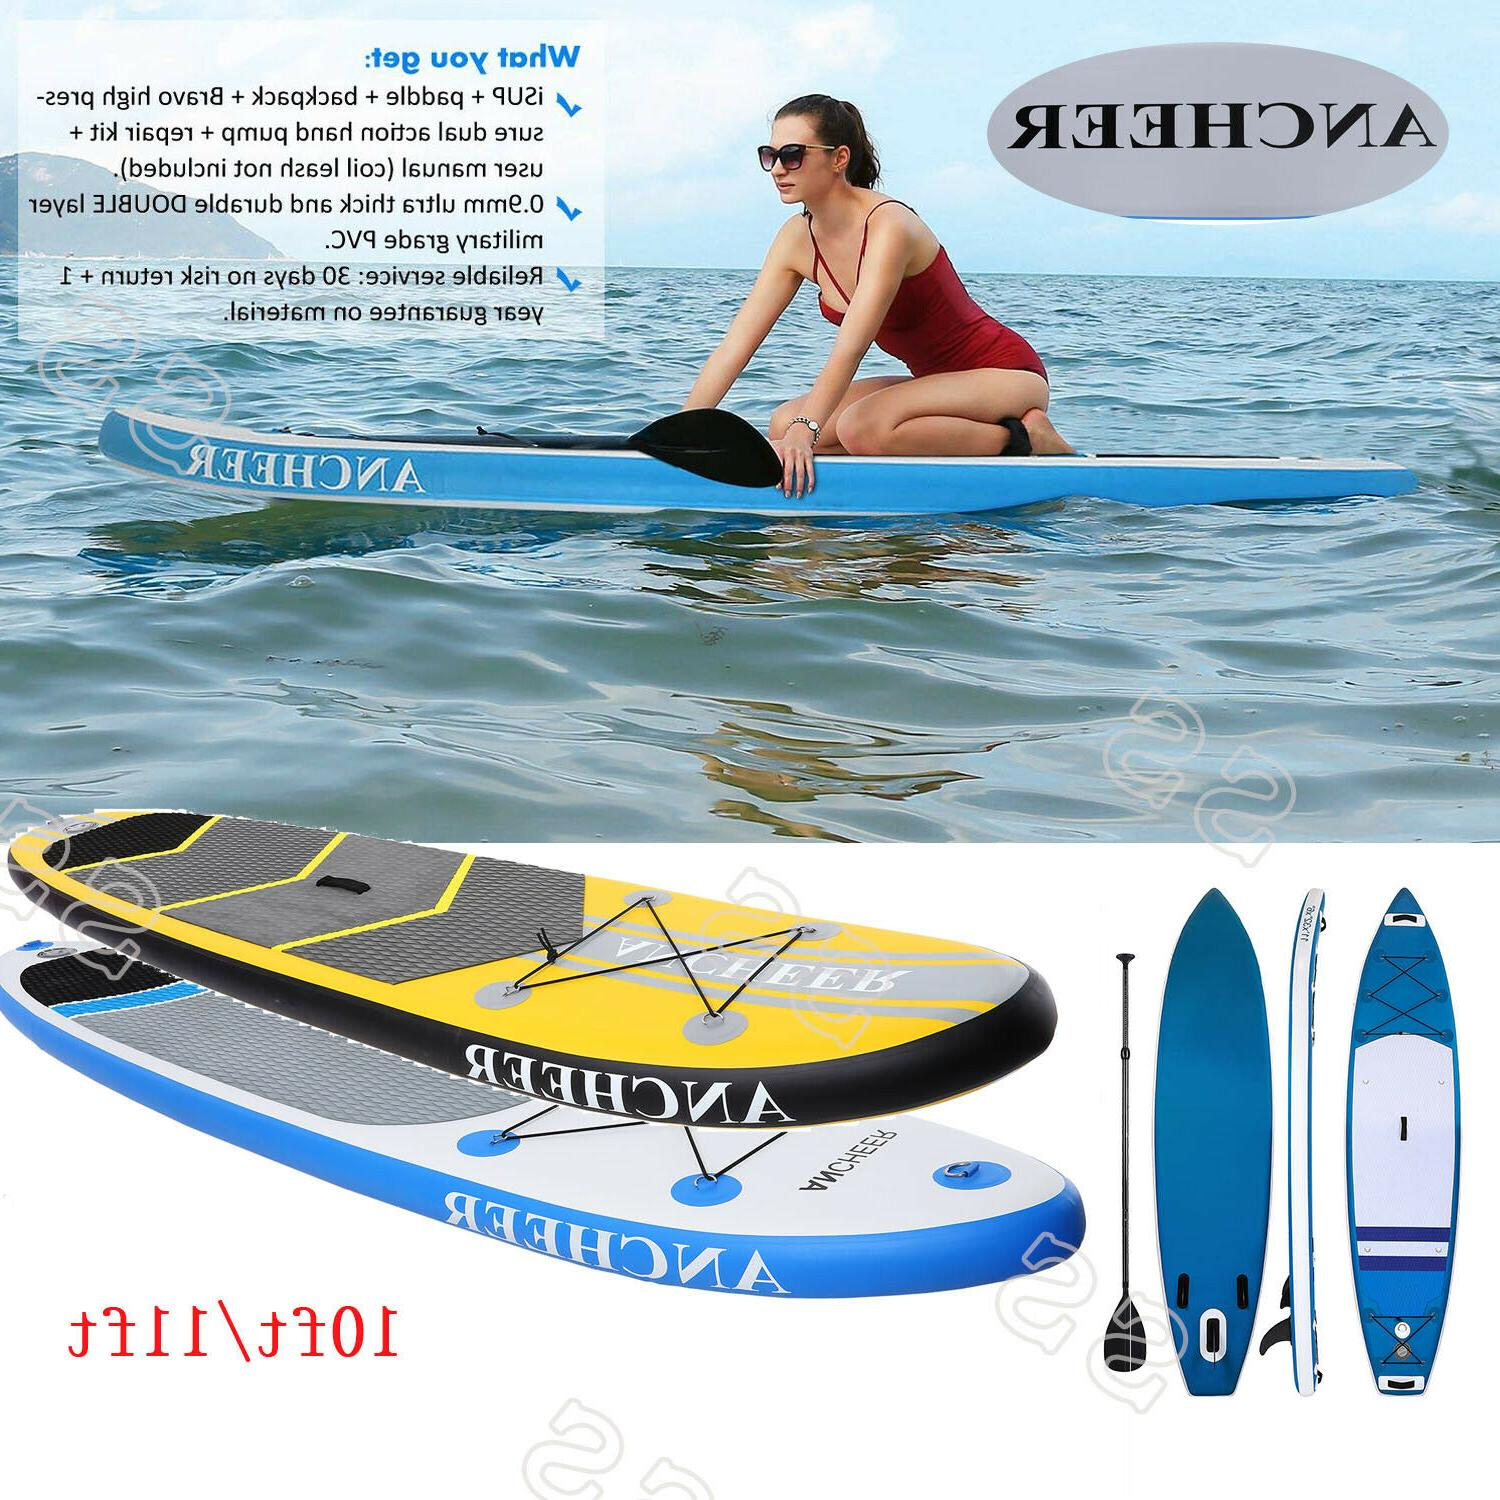 10 FT Inflatable Stand Up Paddle Board w/ Accessories for Pa